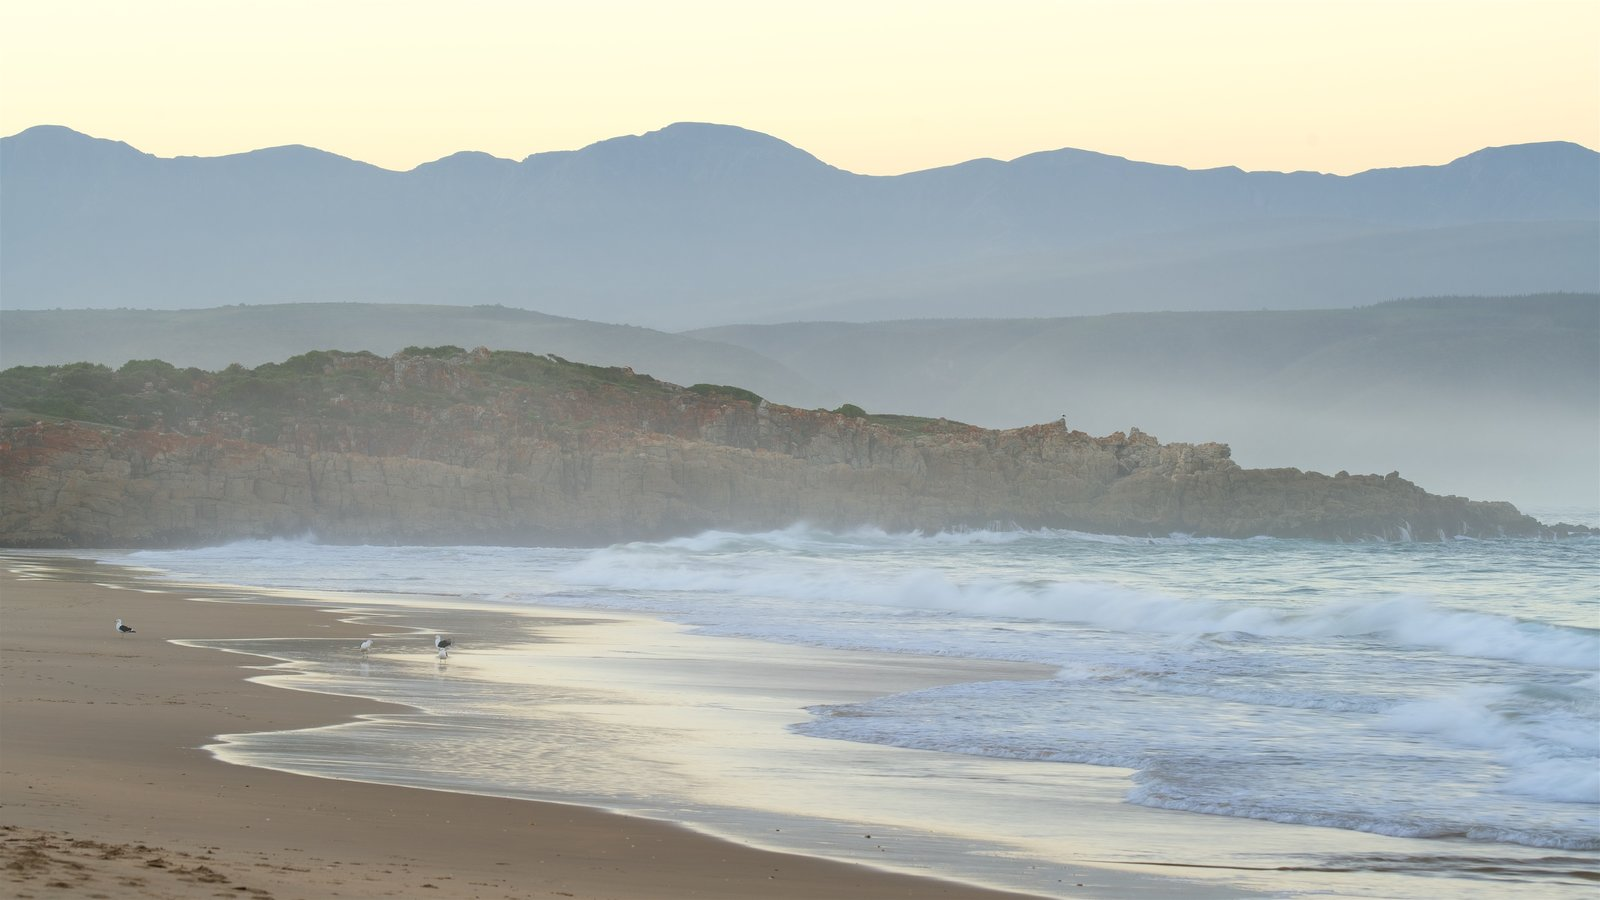 Plettenberg Bay Beach which includes landscape views, general coastal views and a beach